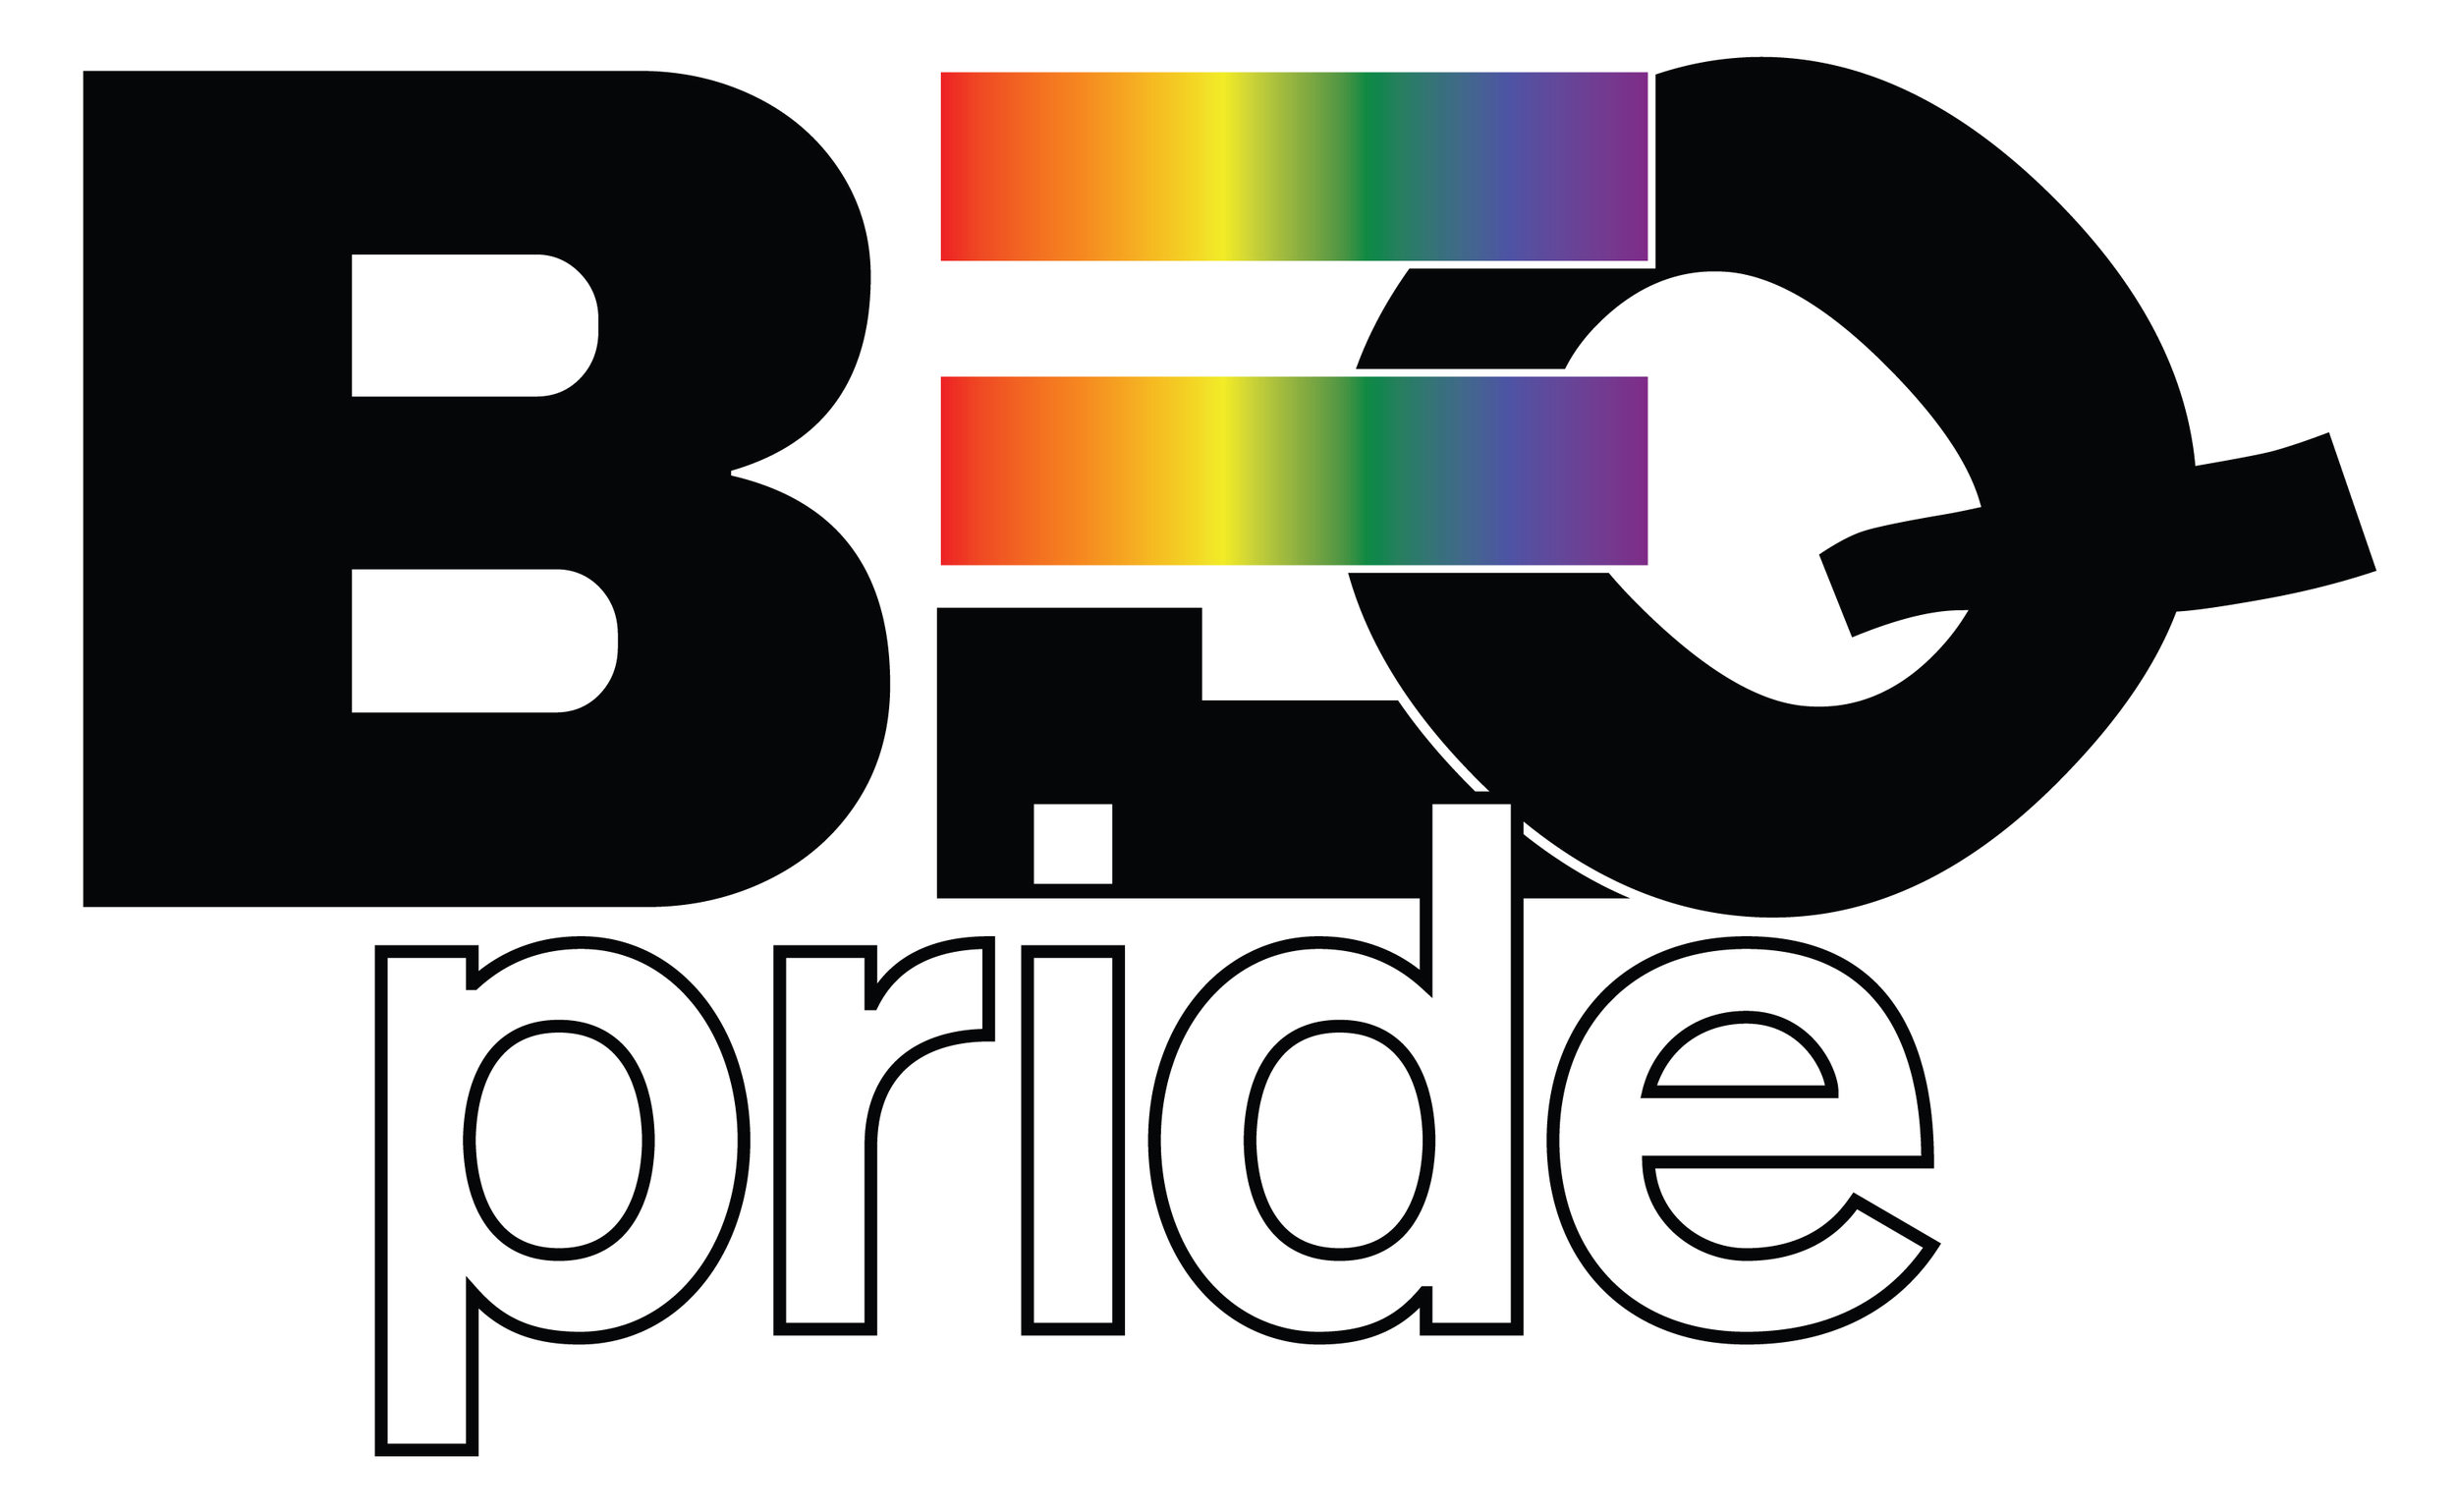 BEQ LOGO & PRIDE WITH WORDS.jpg